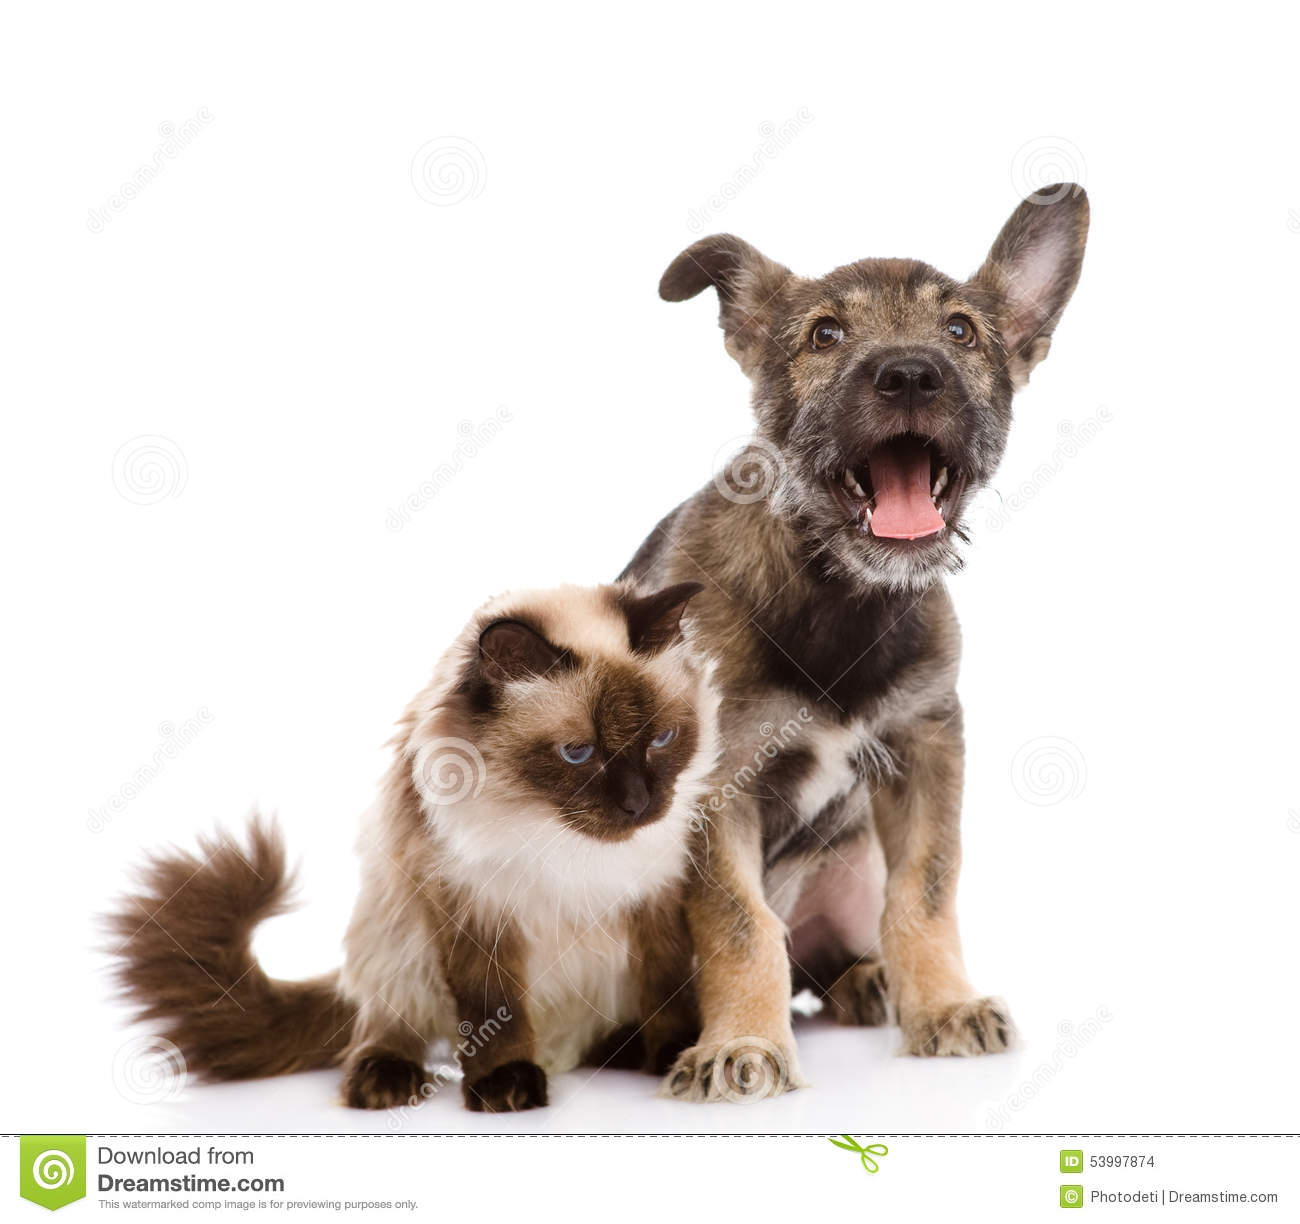 48 063 Cat Dog Photos Free Royalty Free Stock Photos From Dreamstime